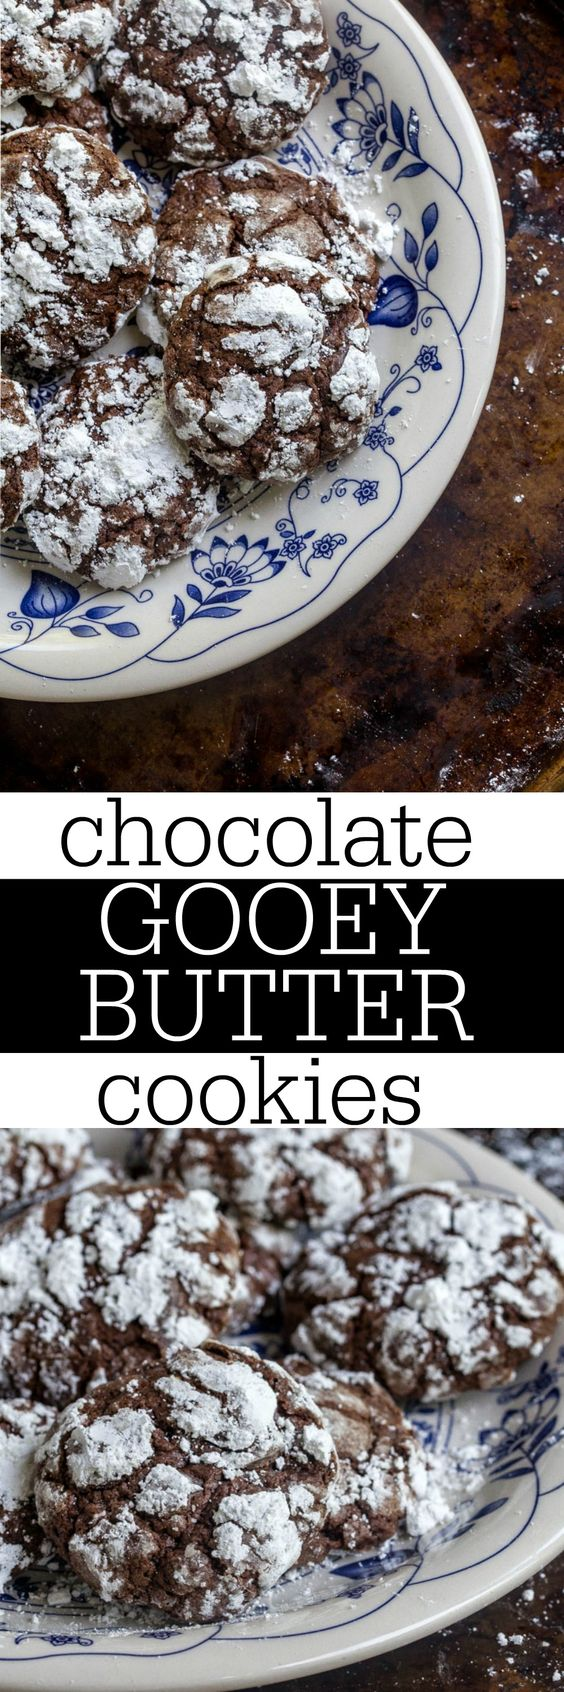 Chocolate gooey butter cookies for Christmas! Like regular ooey gooey butter cookies, but made with chocolate! This cream cheese rich dough doesn't rely on cake mix. Totally made from scratch! #gooeybutter #gooeybuttercake #gooeybuttercookies #creamcheese #creamcheesecookies #ooeygooey #pauladeen #christmasdessert #christmascookies #chocolate #chocolatecookies #smallbatch #cookies